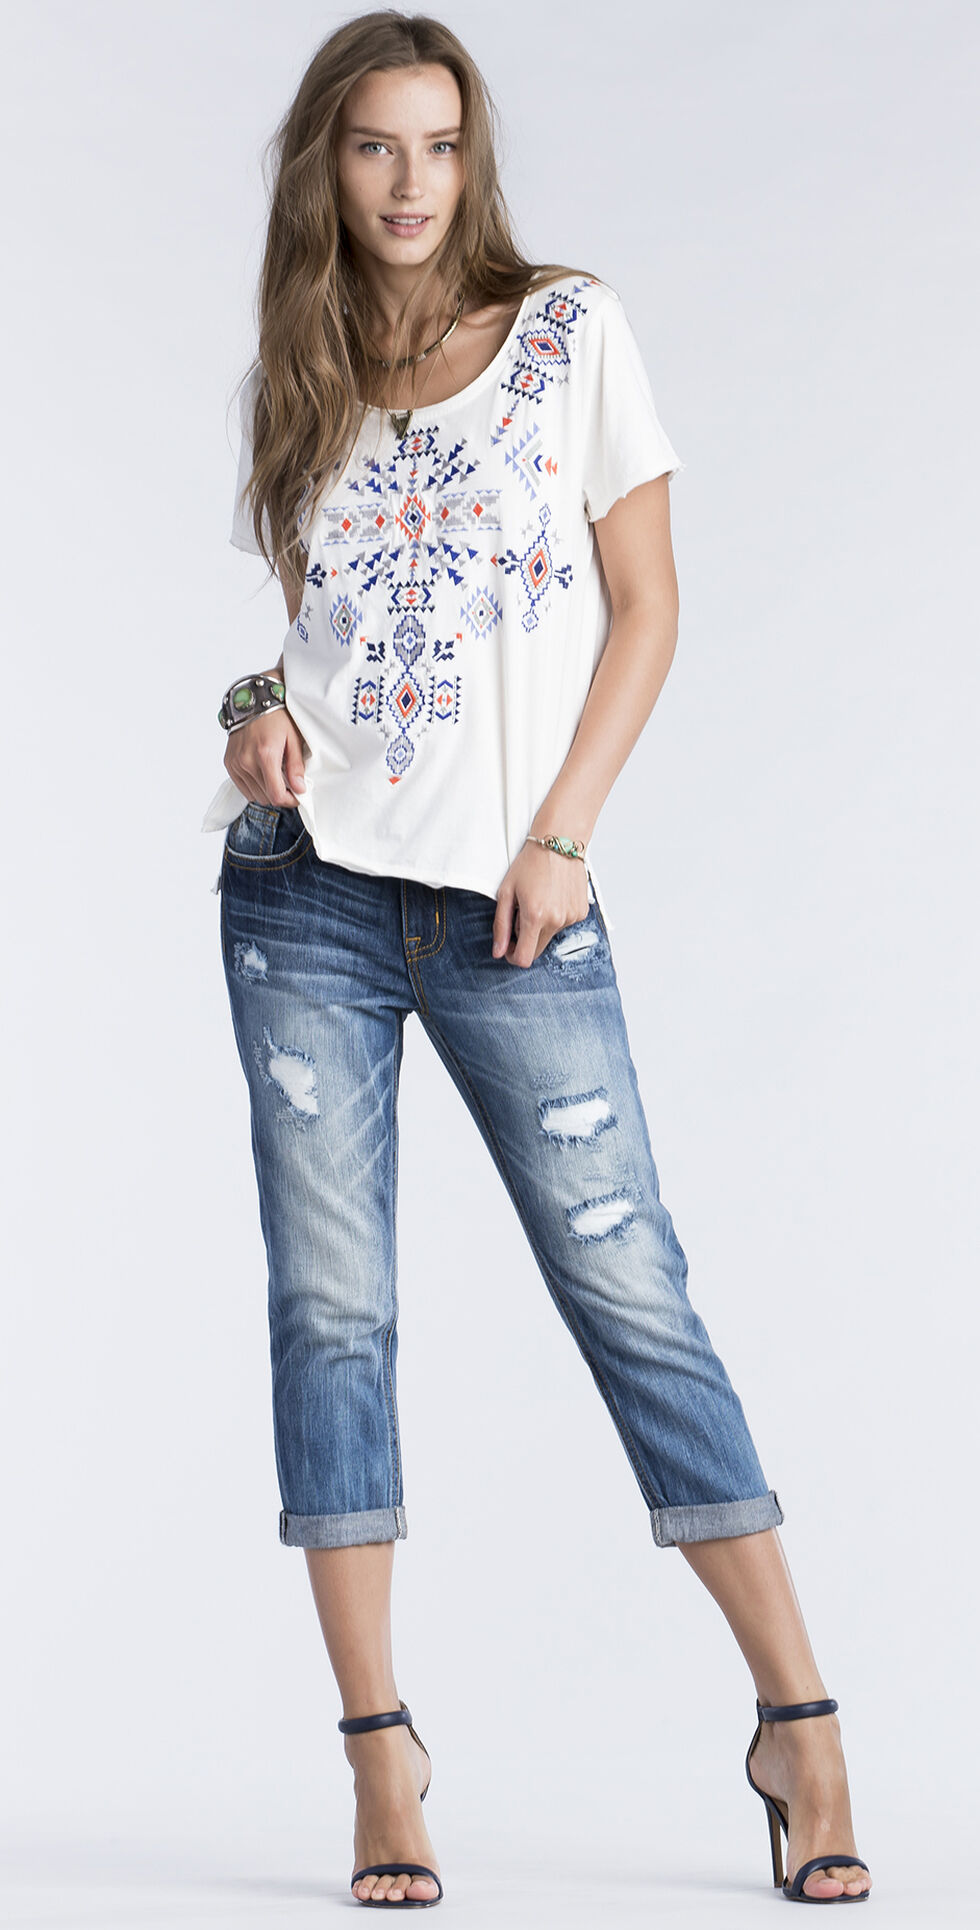 Miss Me Women's White Embroidered Short Sleeve Top , White, hi-res